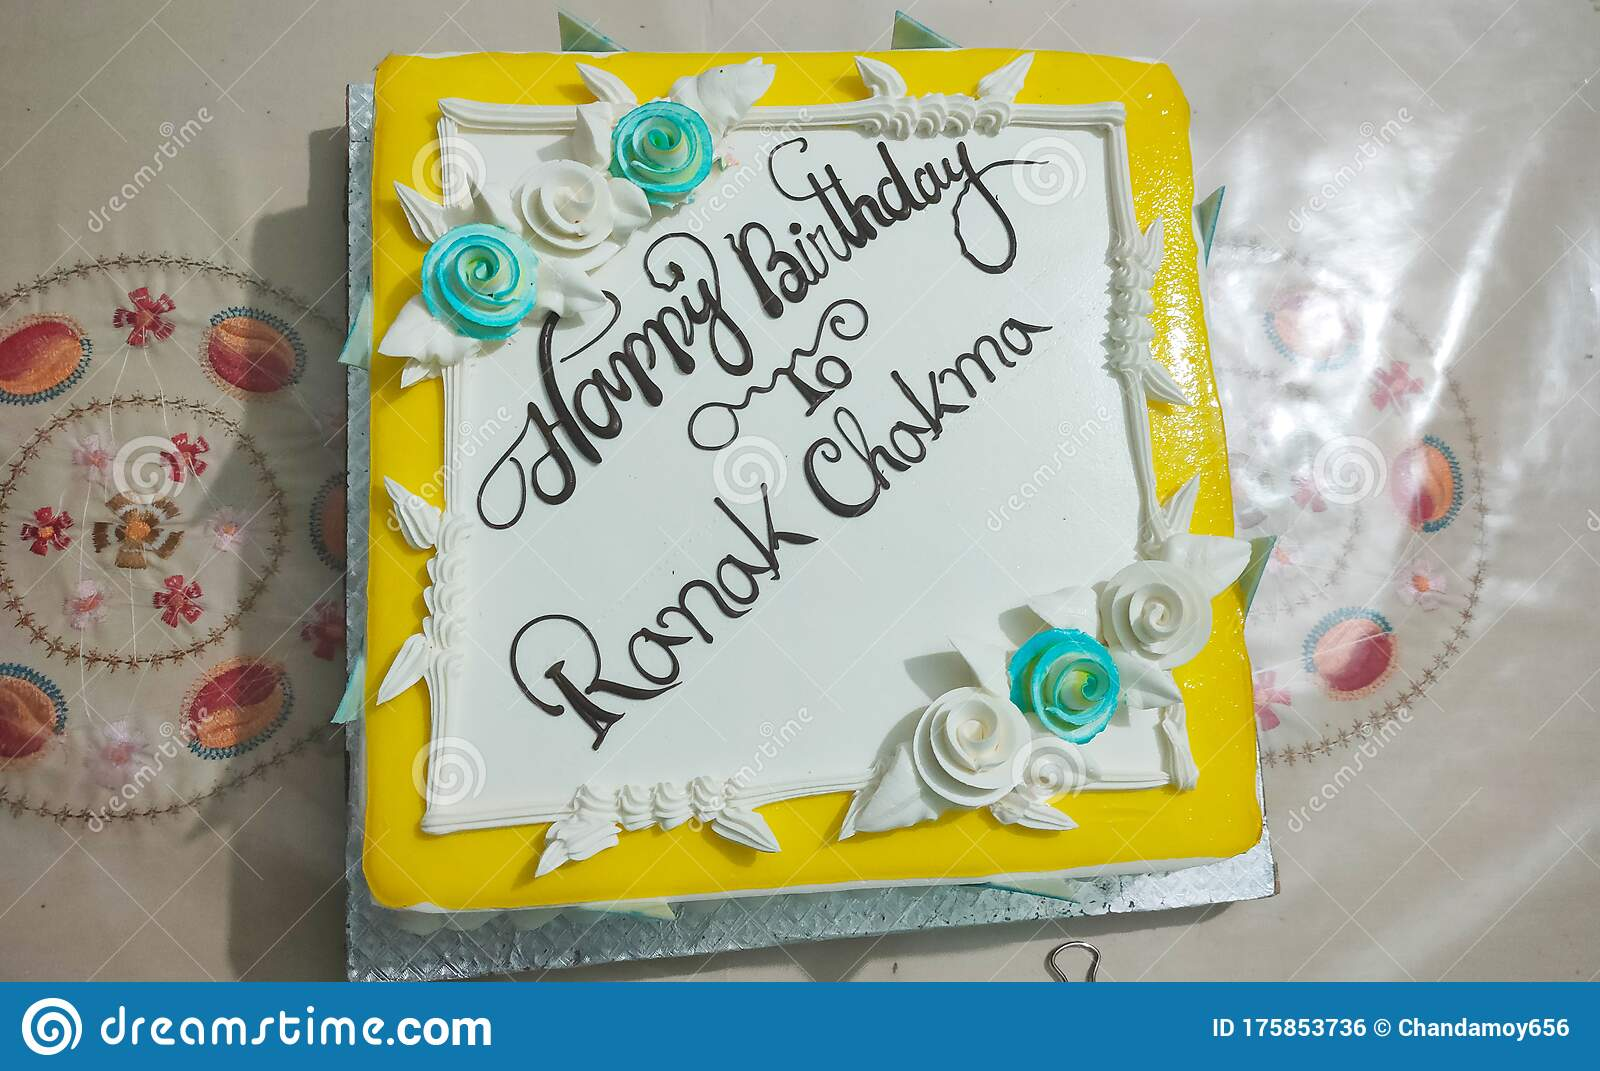 2 545 Birthday Cake Simple Photos Free Royalty Free Stock Photos From Dreamstime